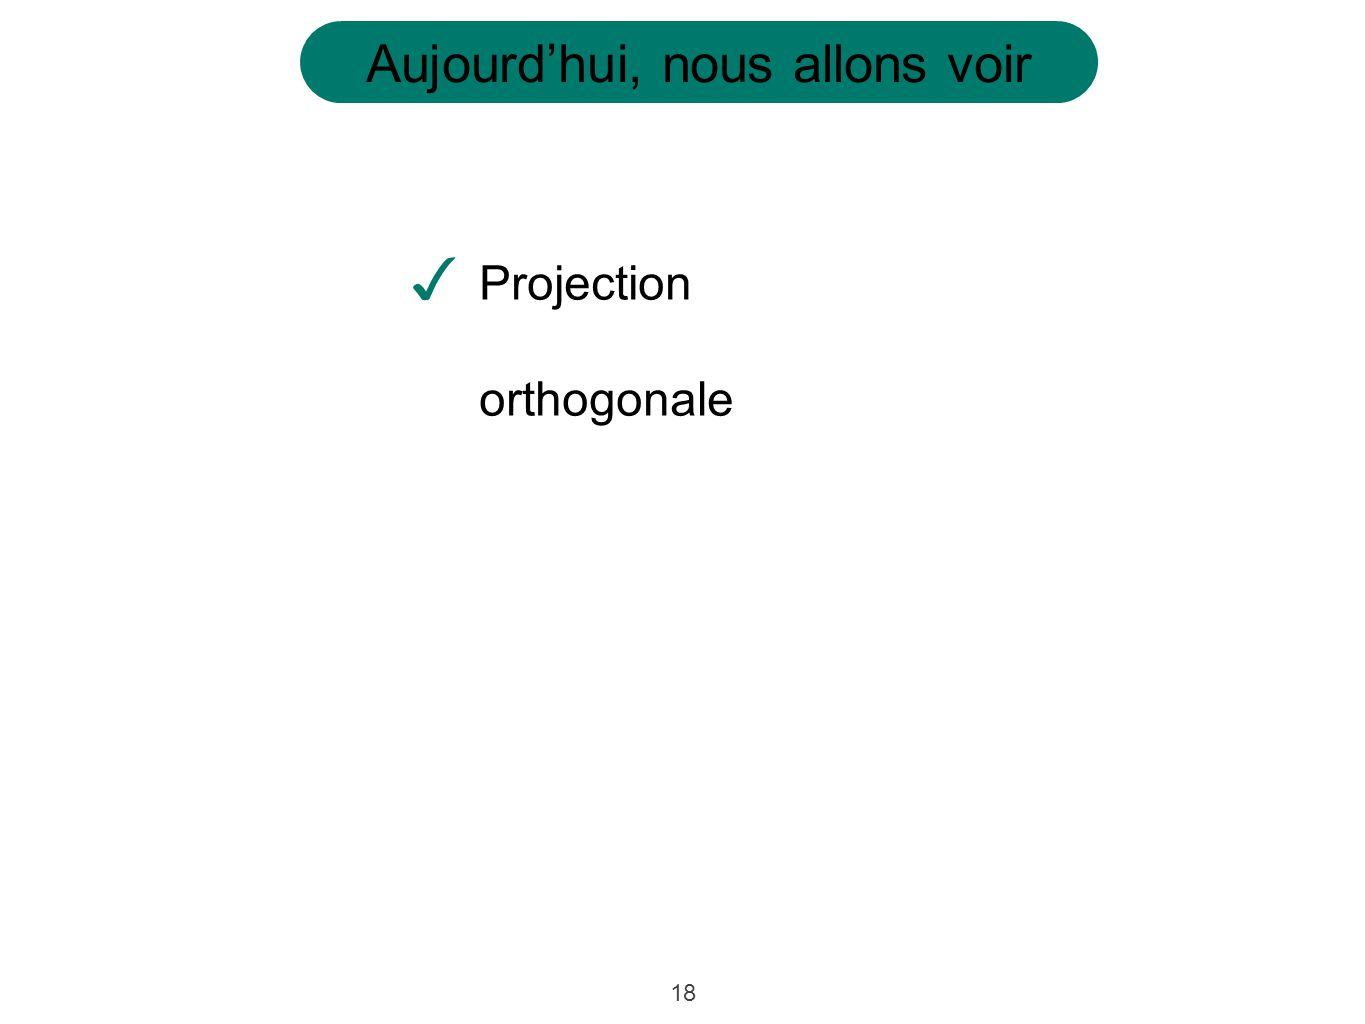 Projection orthogonale